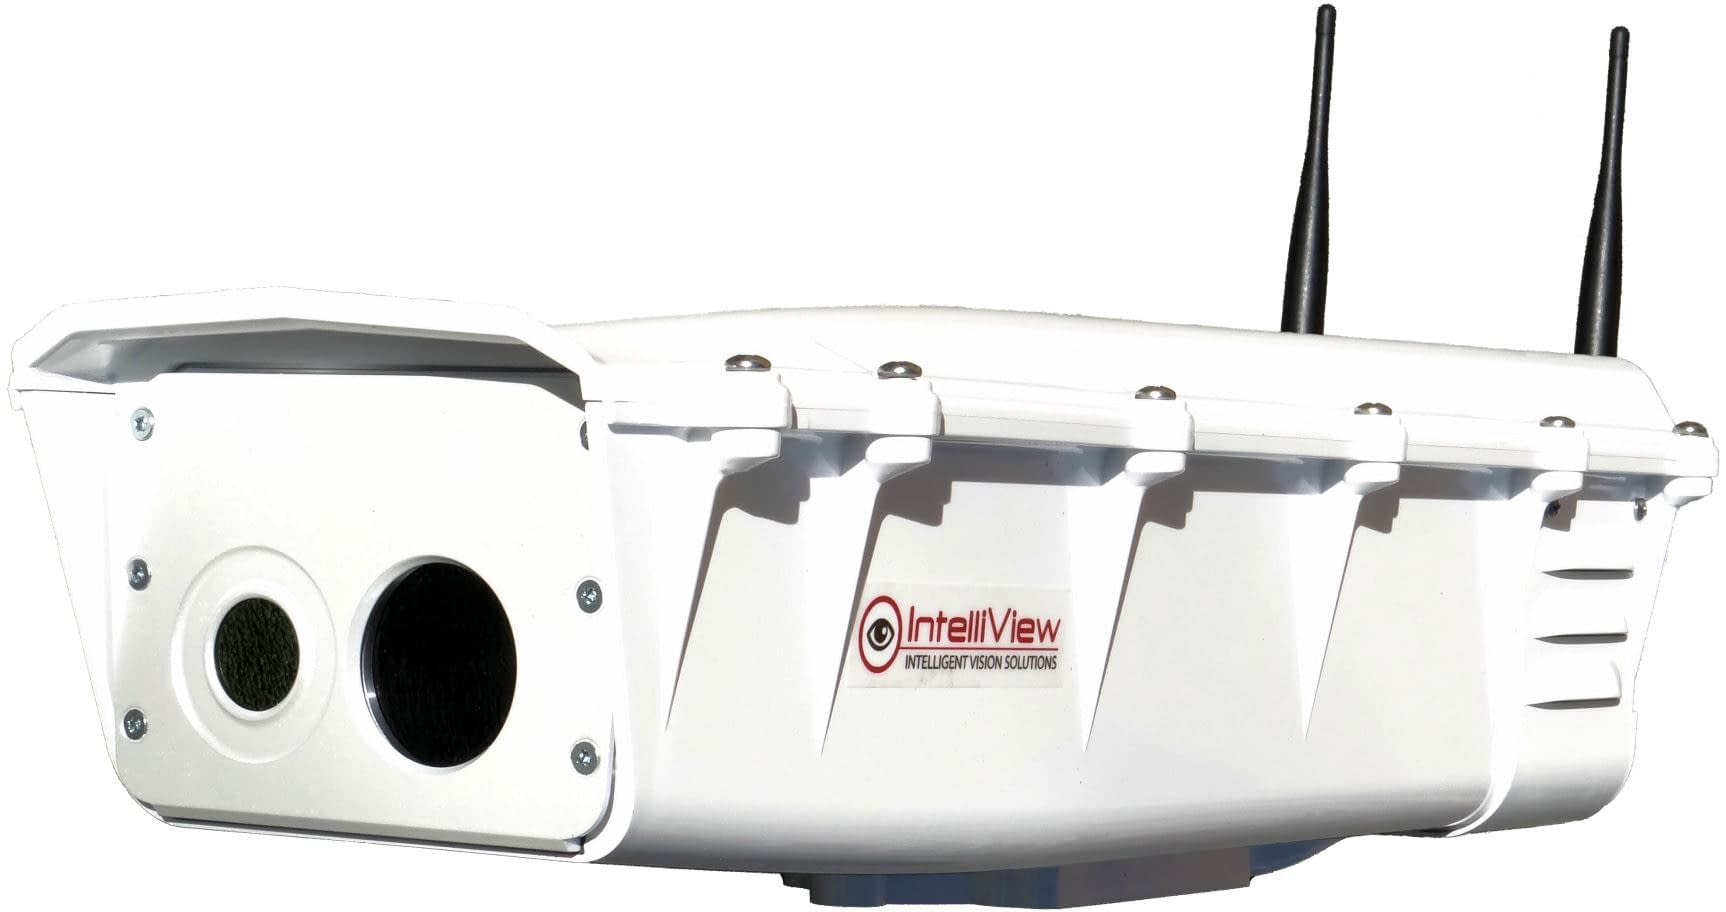 dual analytic camera system (thermal and color imagers) for leak detection and remote monitoring